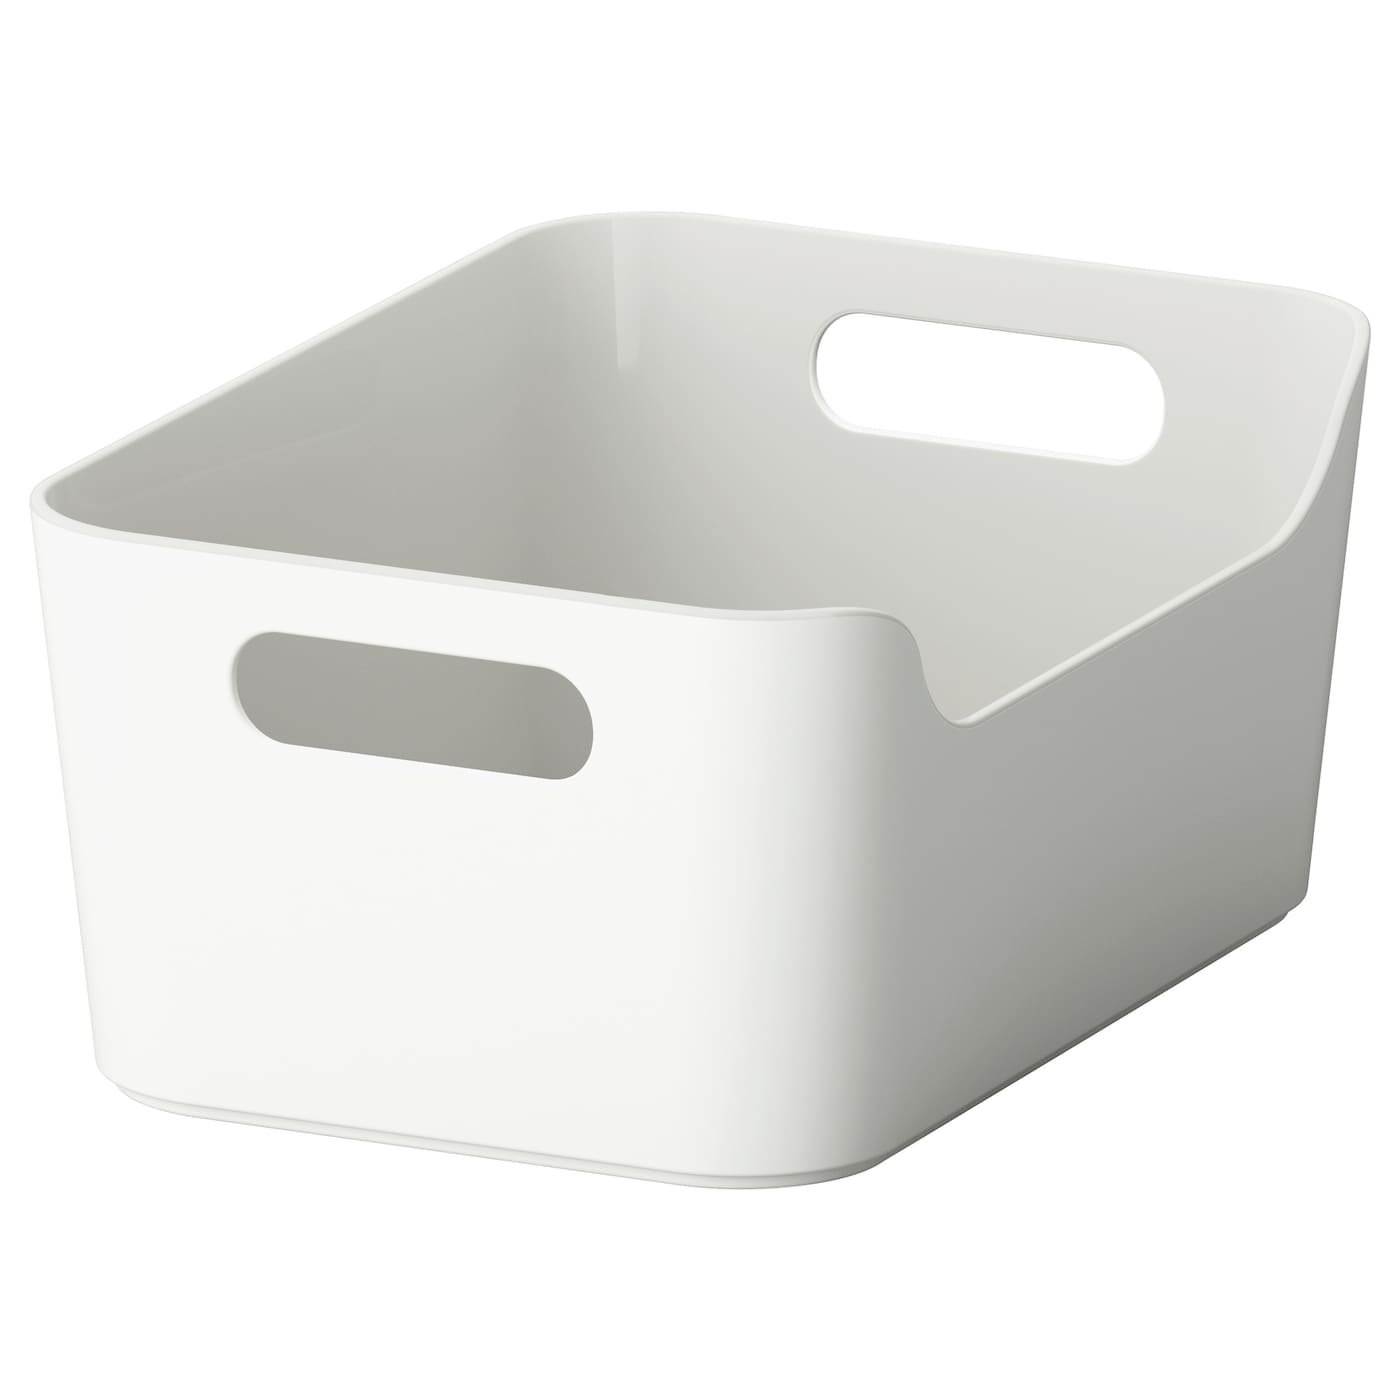 IKEA VARIERA box Easy to clean, with soft rounded corners.